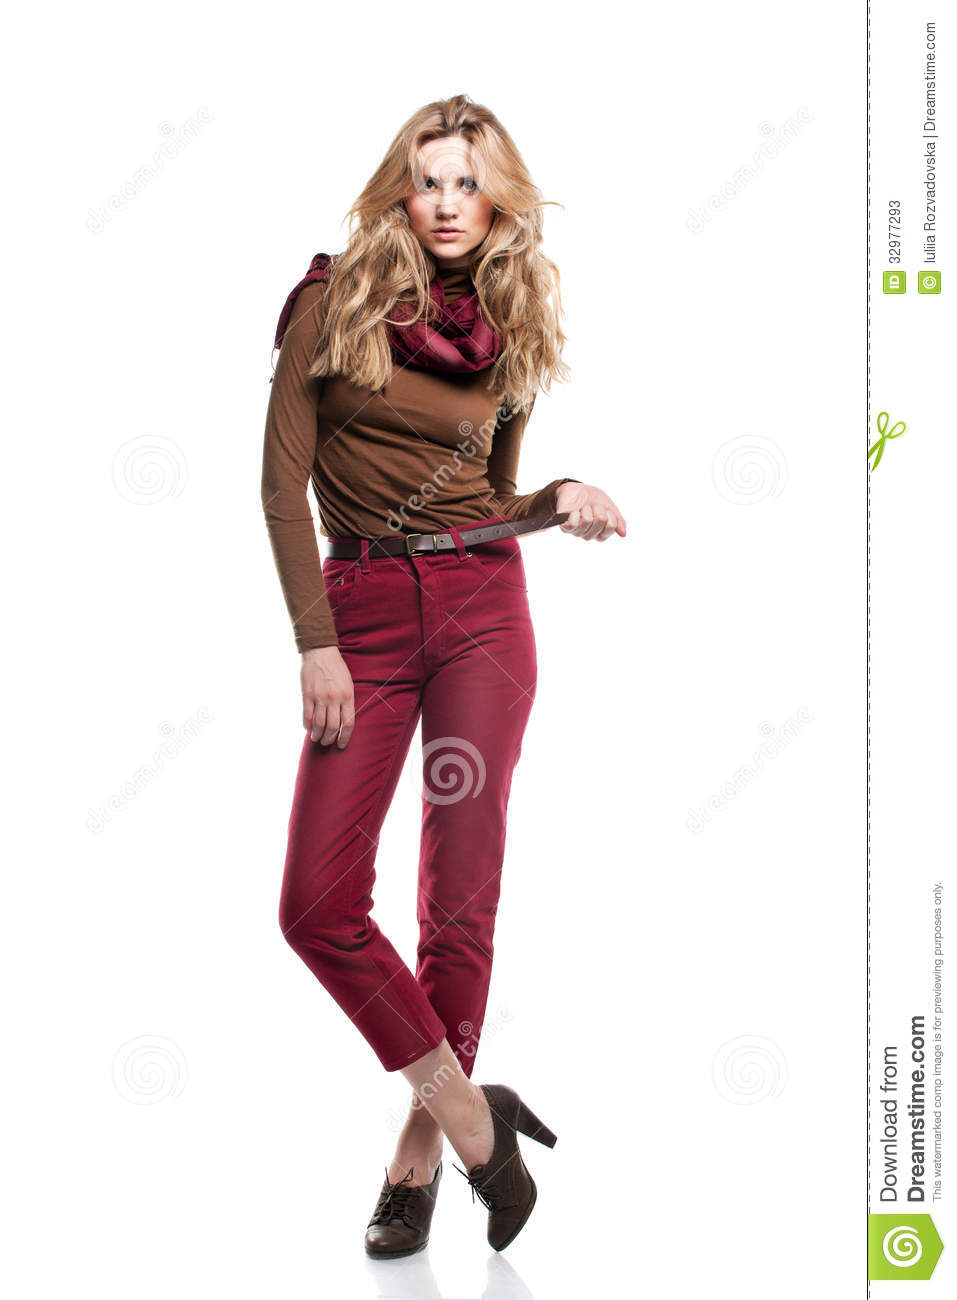 Beautiful Girl Is In Fashion Style Professional Makeup And Hair Stock Photos Image 32977293